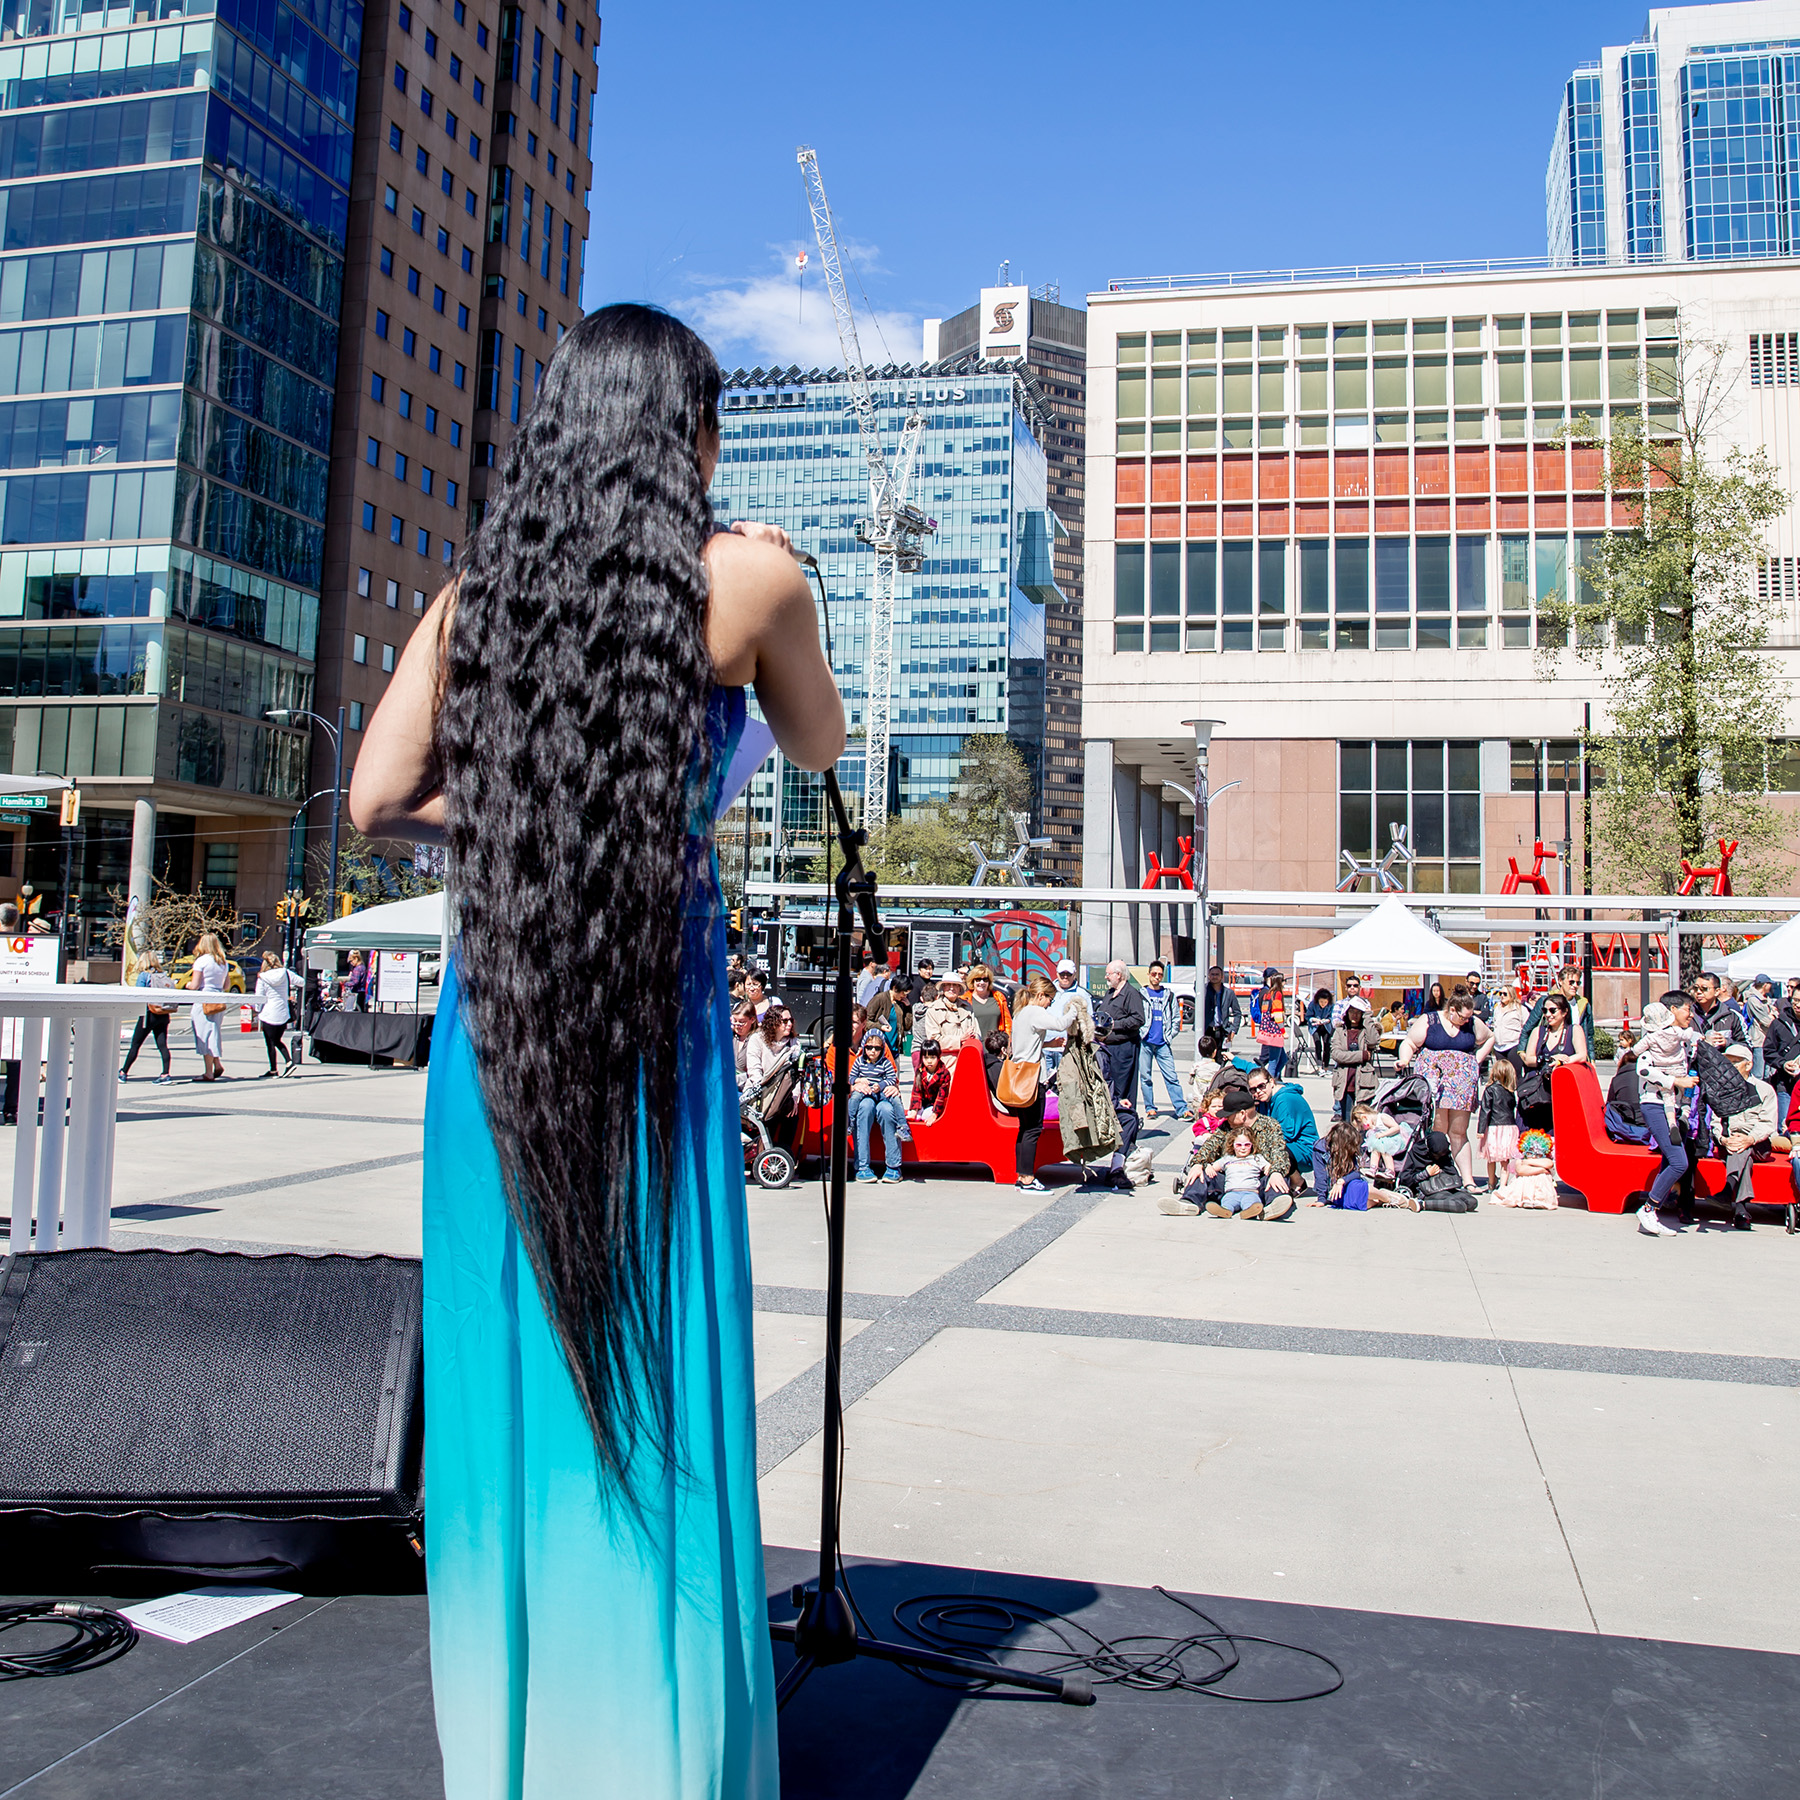 Shown from behind, an Asian Canadian woman with extremely long wavy black hair stands on an outdoor stage, wearing a blue dress, singing into a microphone. In front of her stretches an outdoor plaza, with a crowd enjoying her performance.